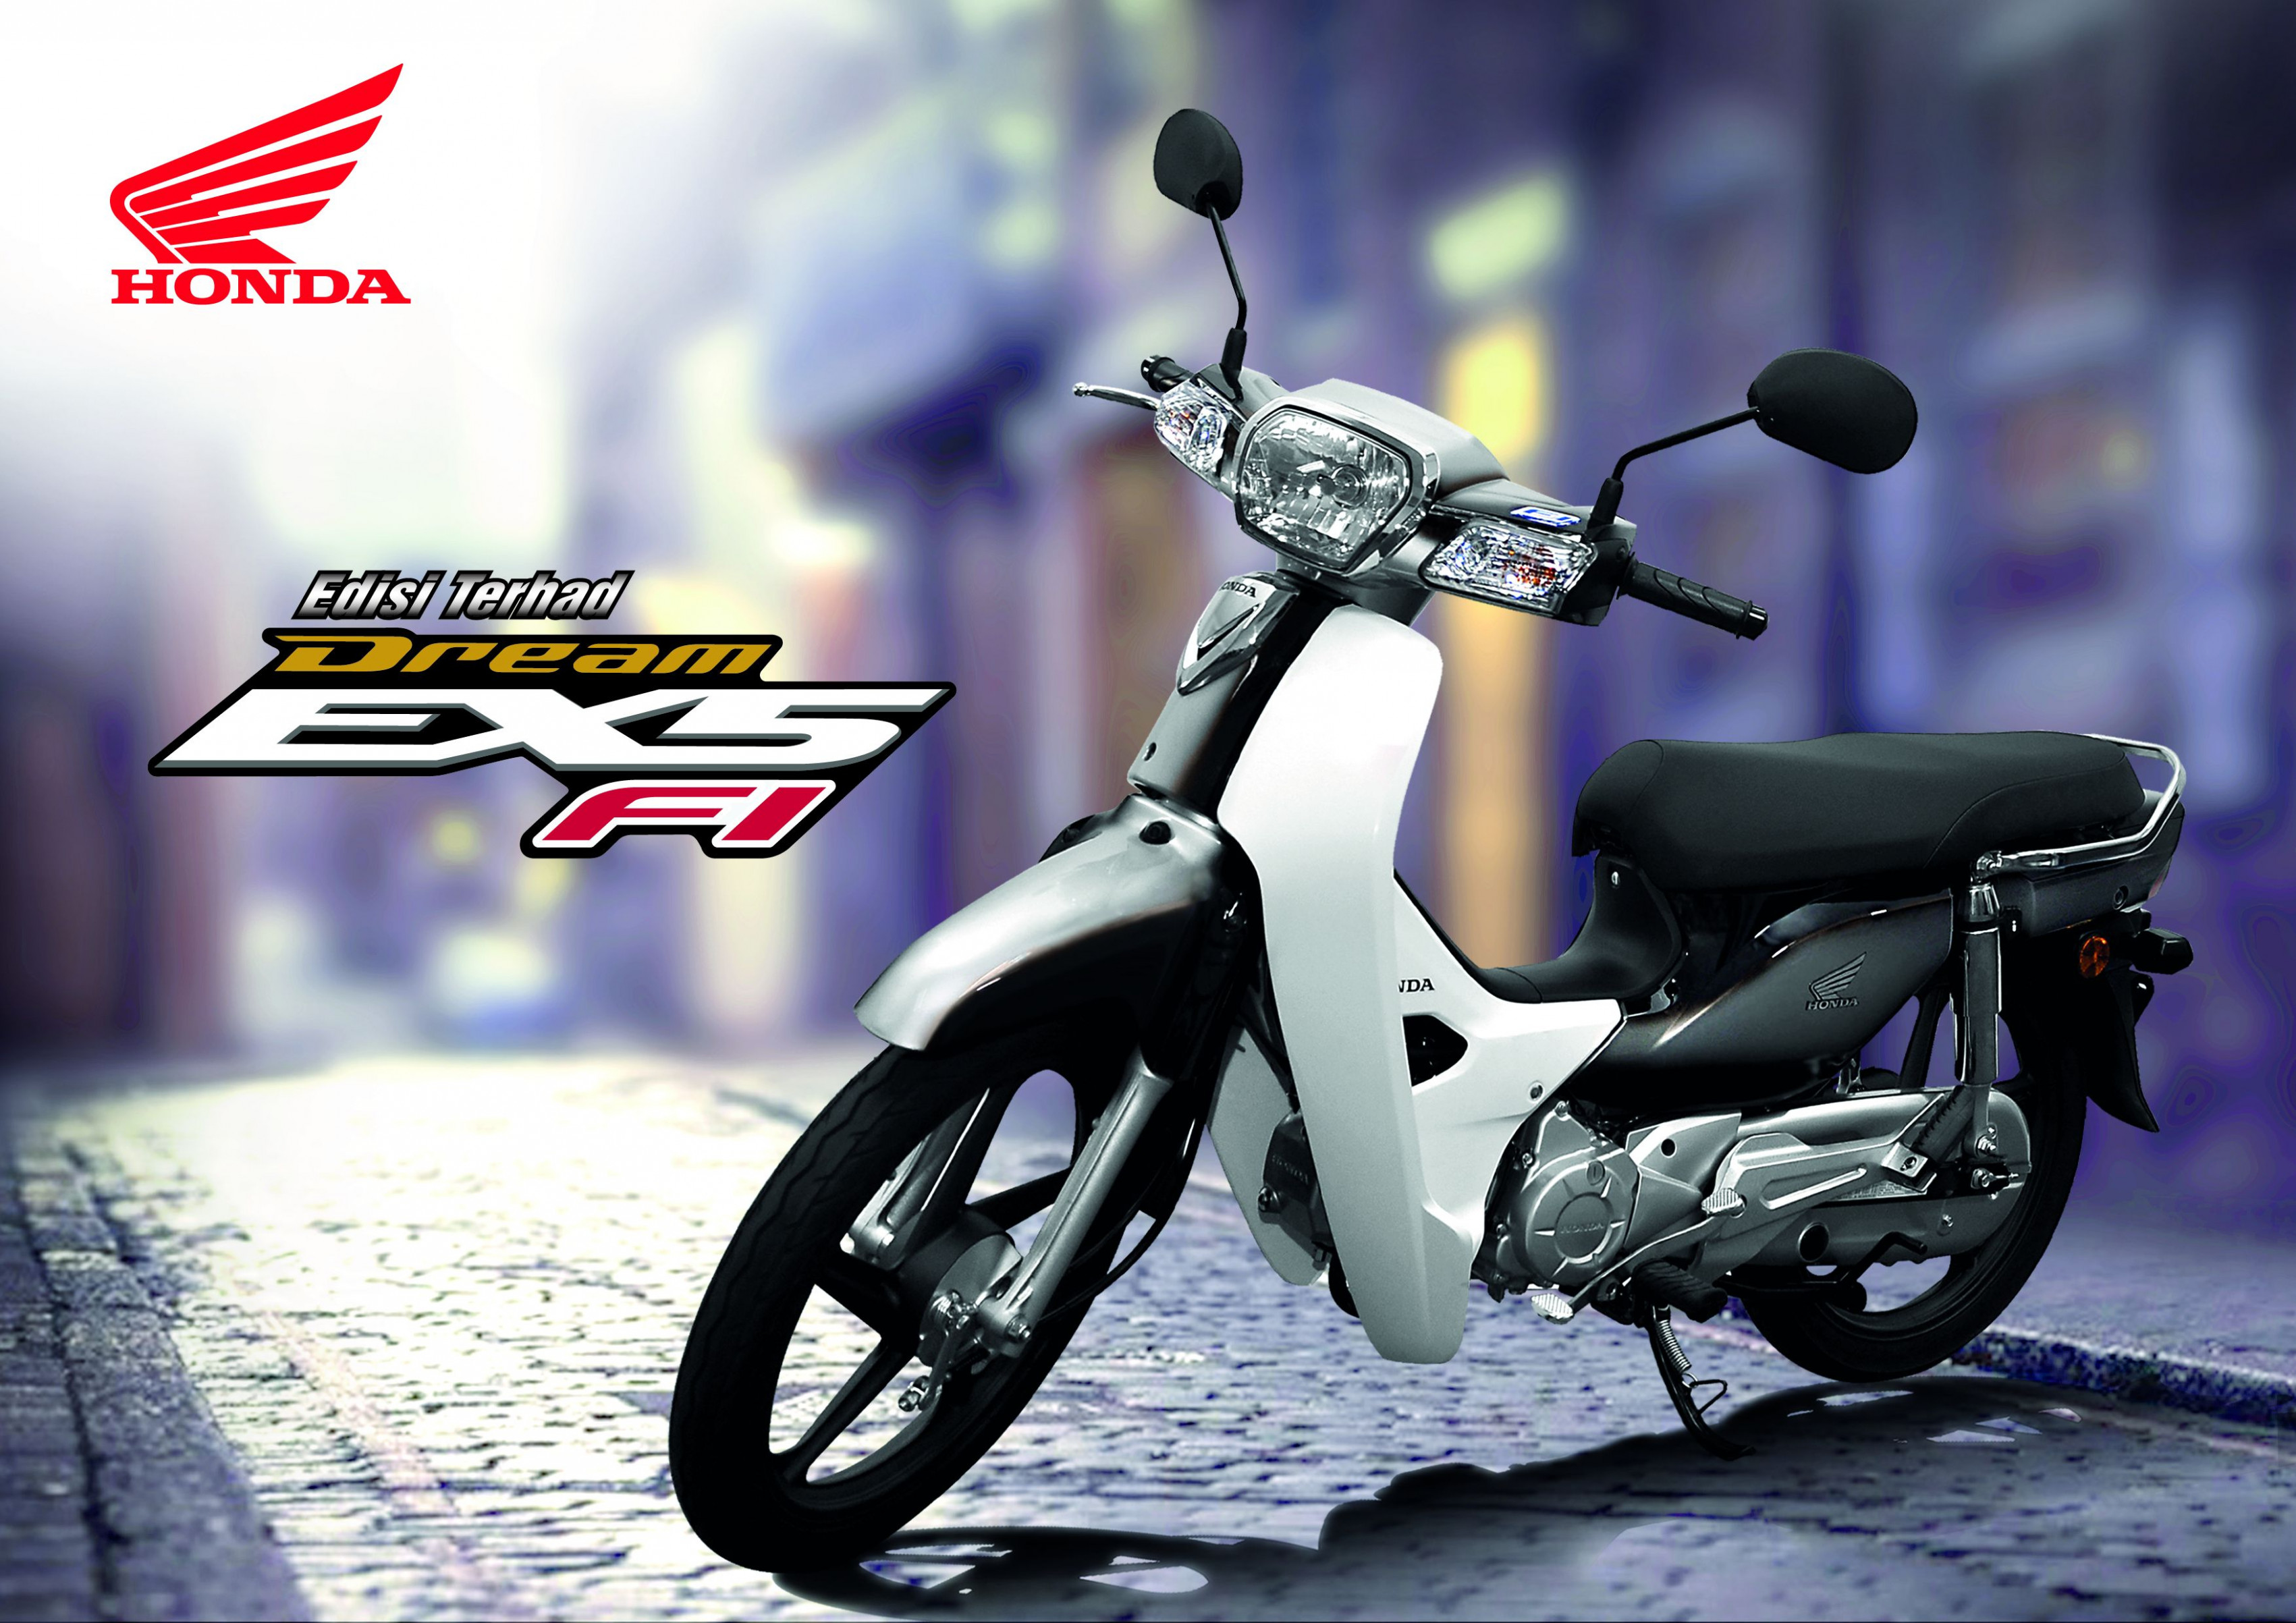 honda ex11 11 Redesign and Price 6110*6110 - honda ex11 11 Price ...